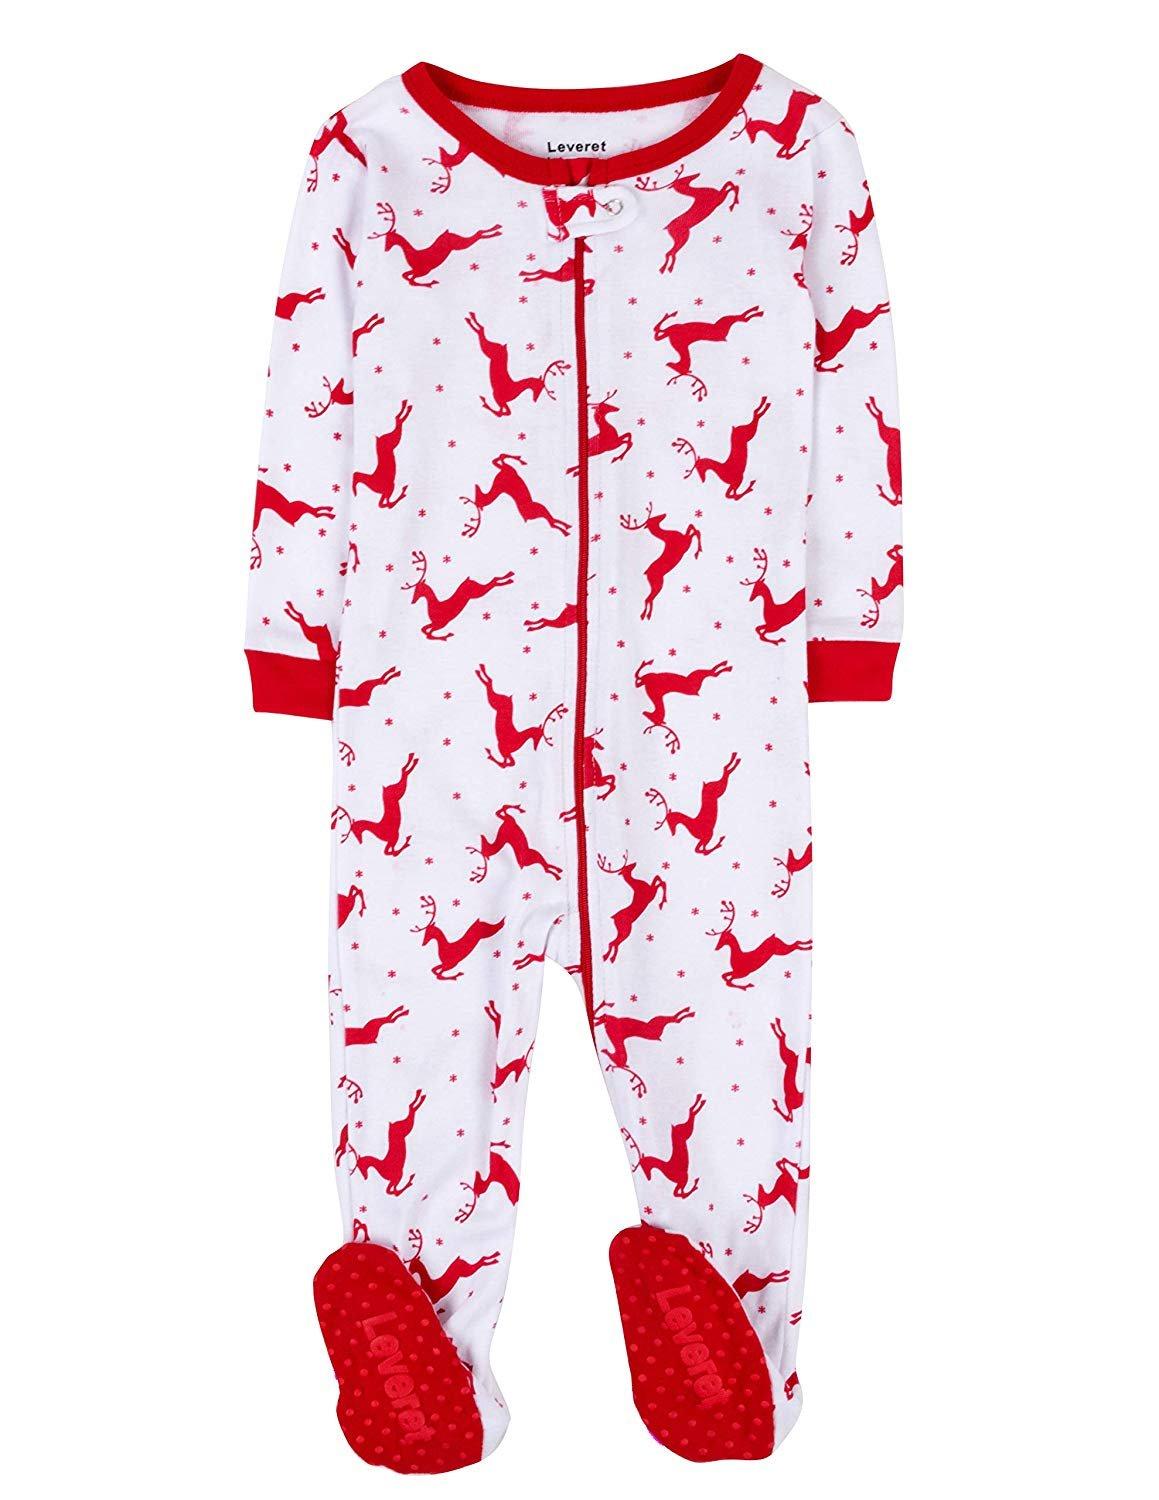 Leveret White Reindeer Footed Pajama Pajama Sleeper 100% Cotton 18-24 Months